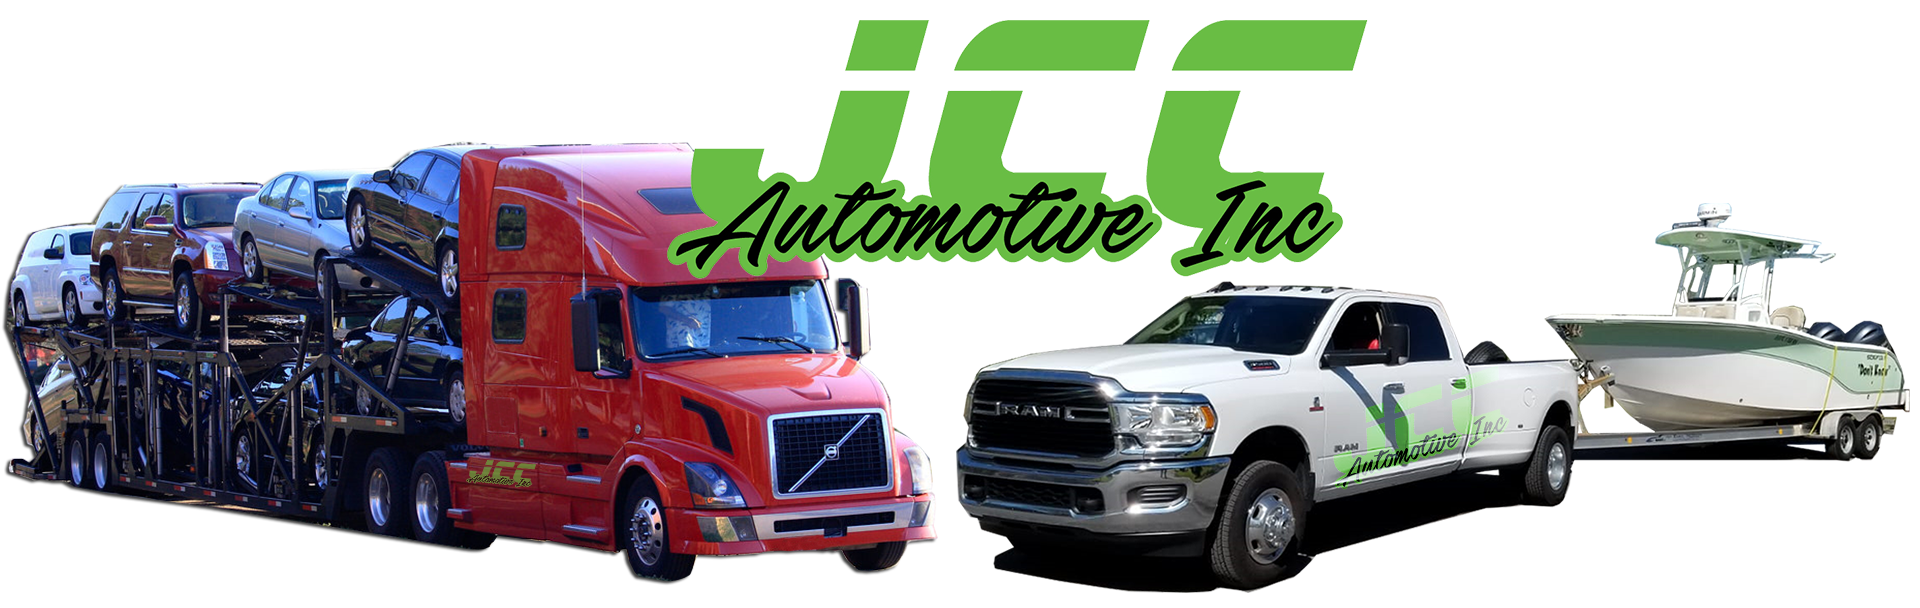 JCC Automotive Inc. image | Auto Transport Professional Services, 3 New Street, Oceanside, Long Island, NY, 11572 | PHONE: 516-287-4189, FAX: 516-599-8206